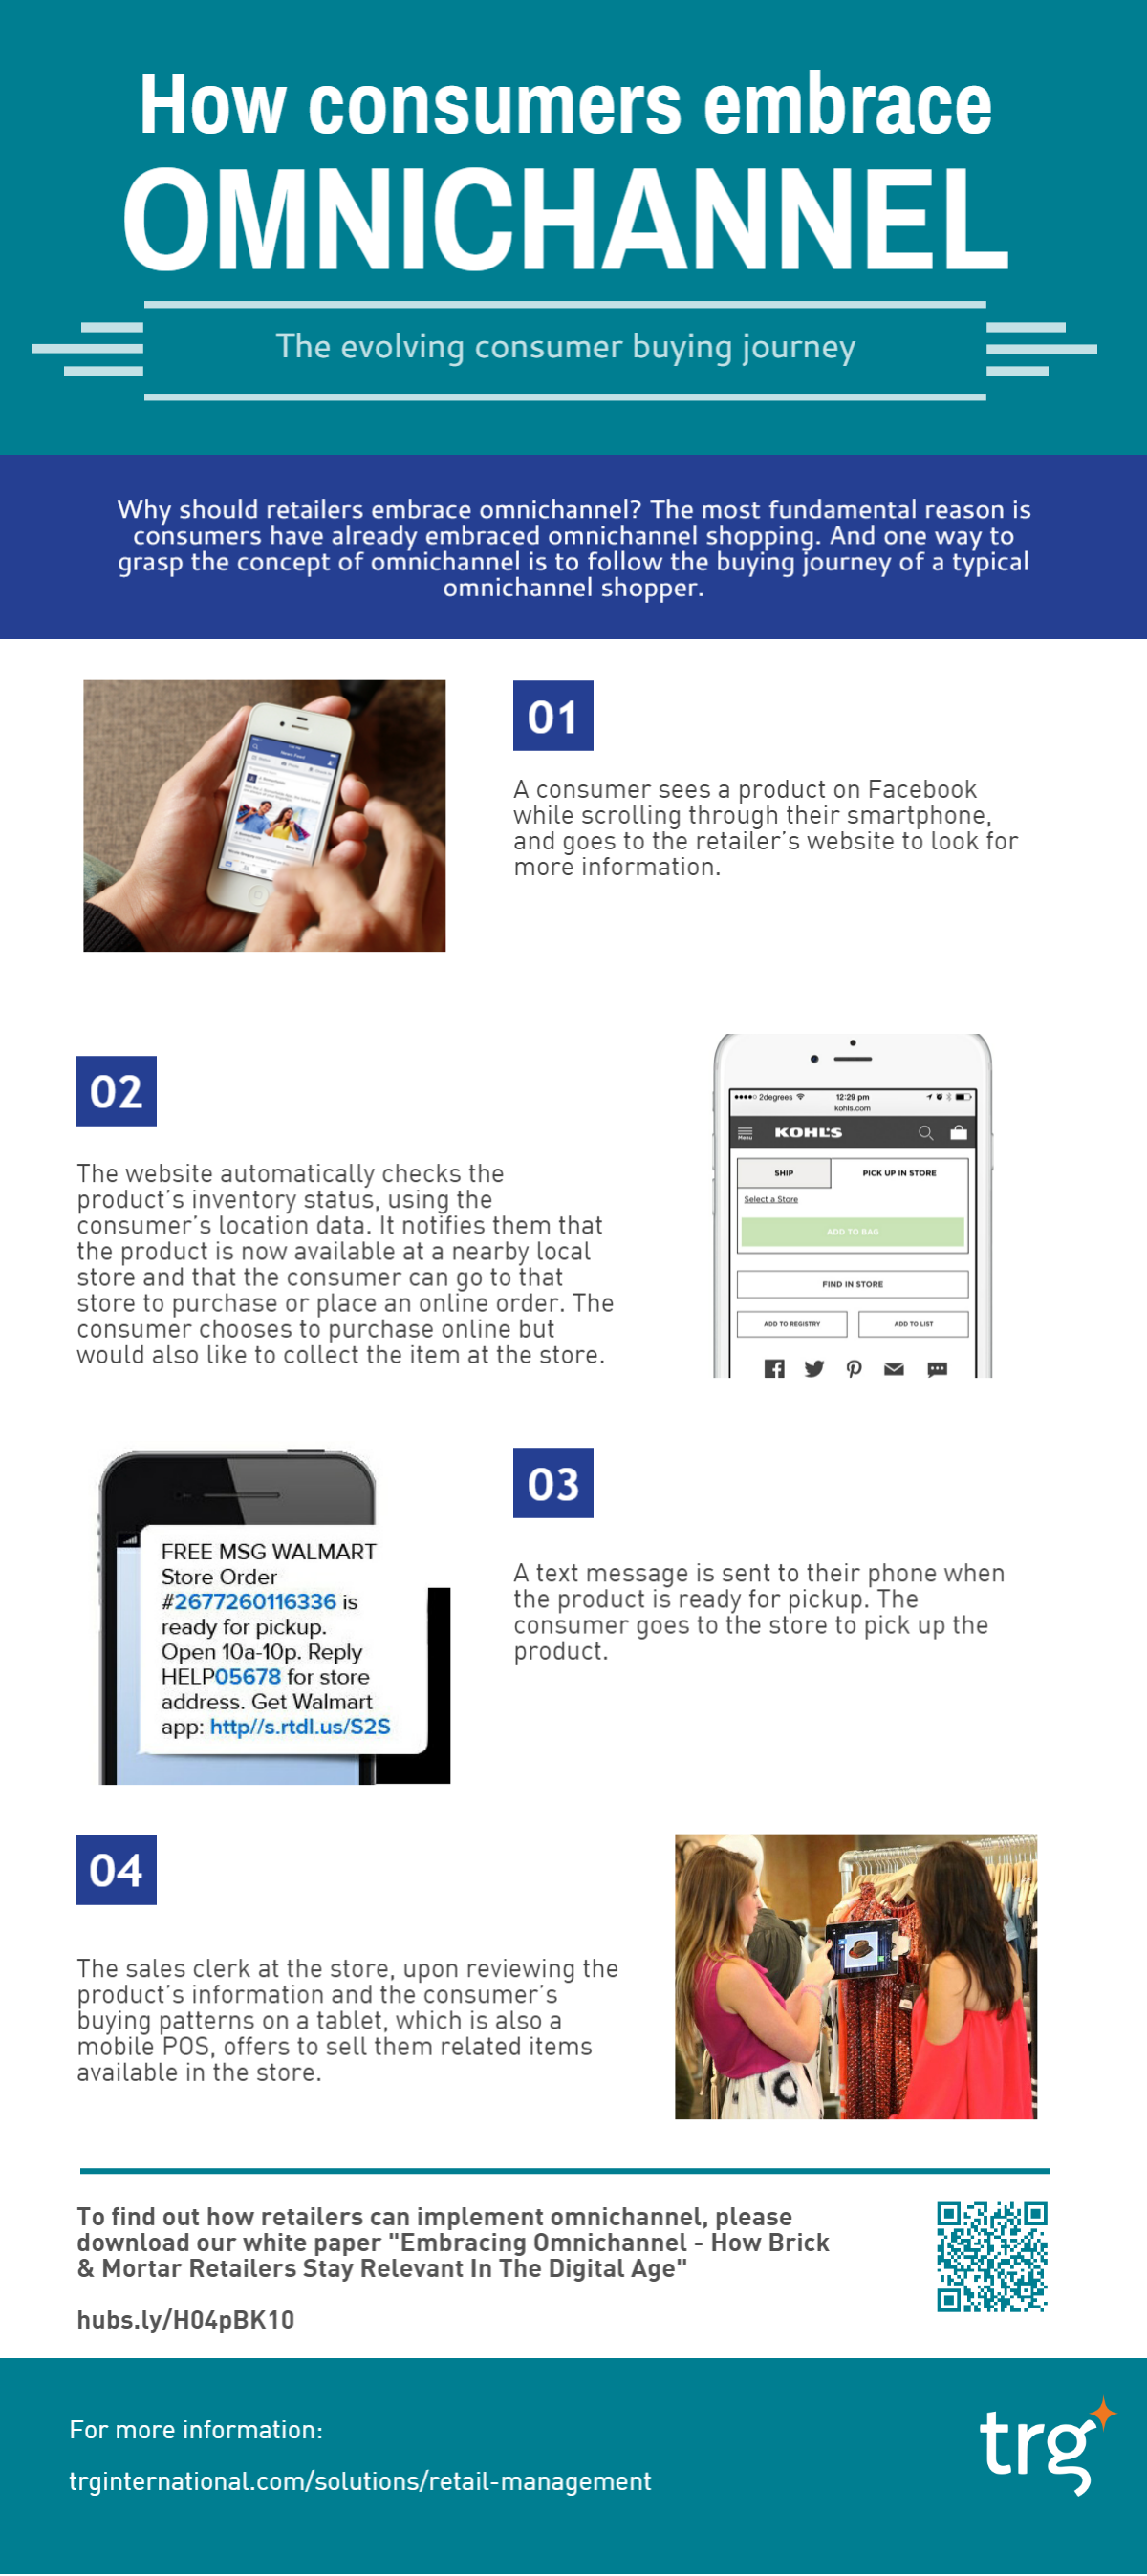 [INFOGRAPHIC] How customers embrace omnichannel